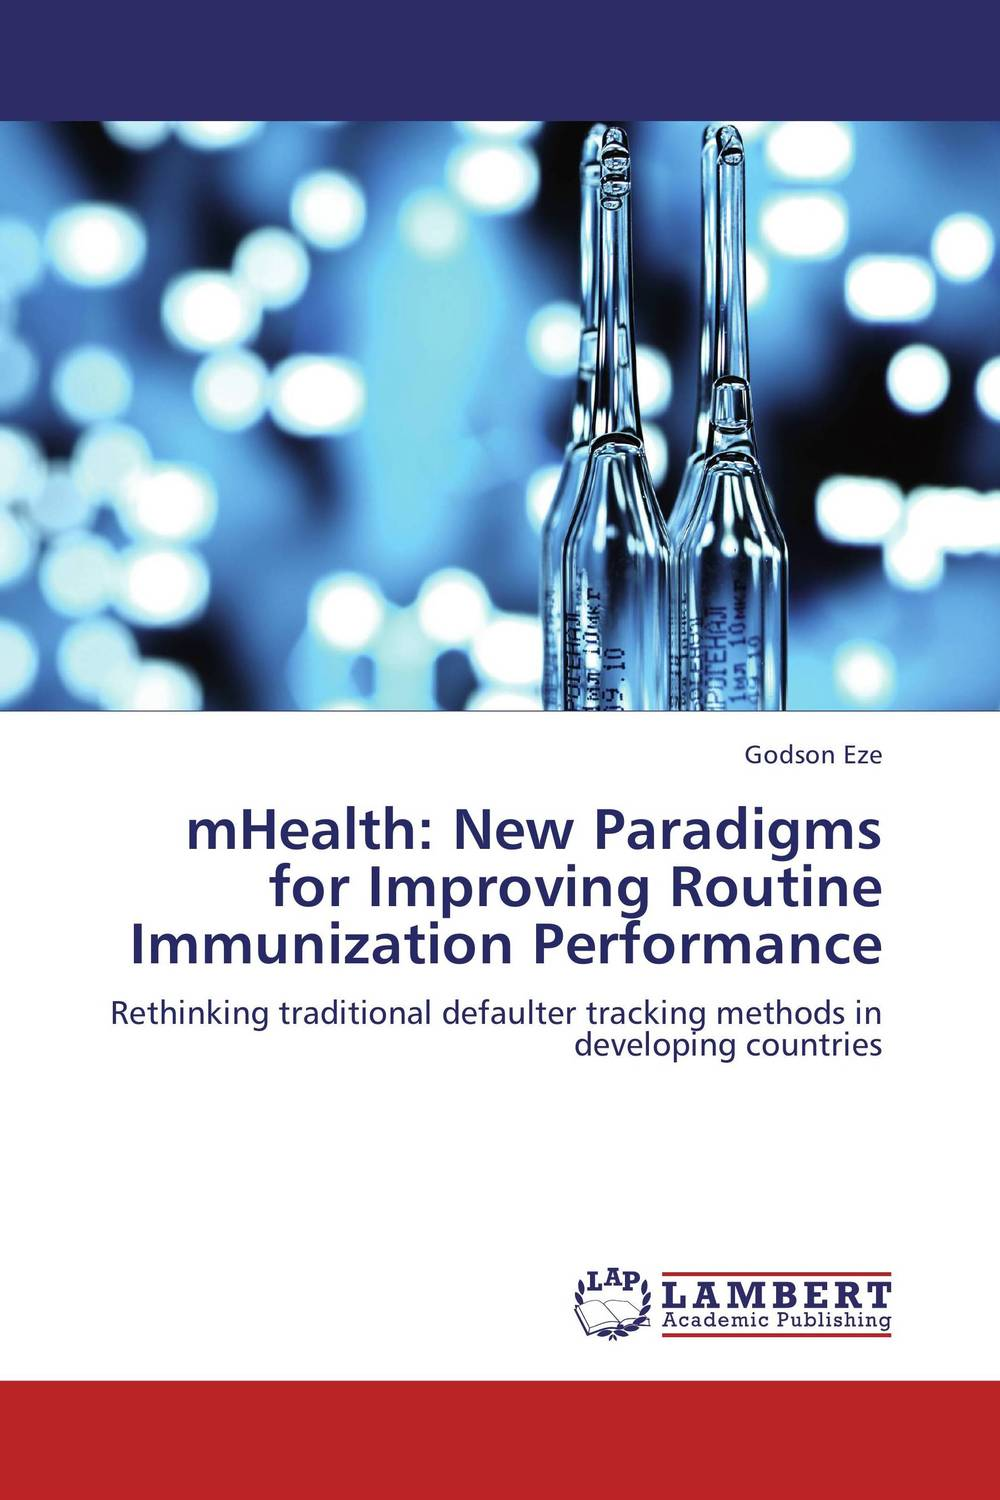 mHealth: New Paradigms for Improving Routine Immunization Performance